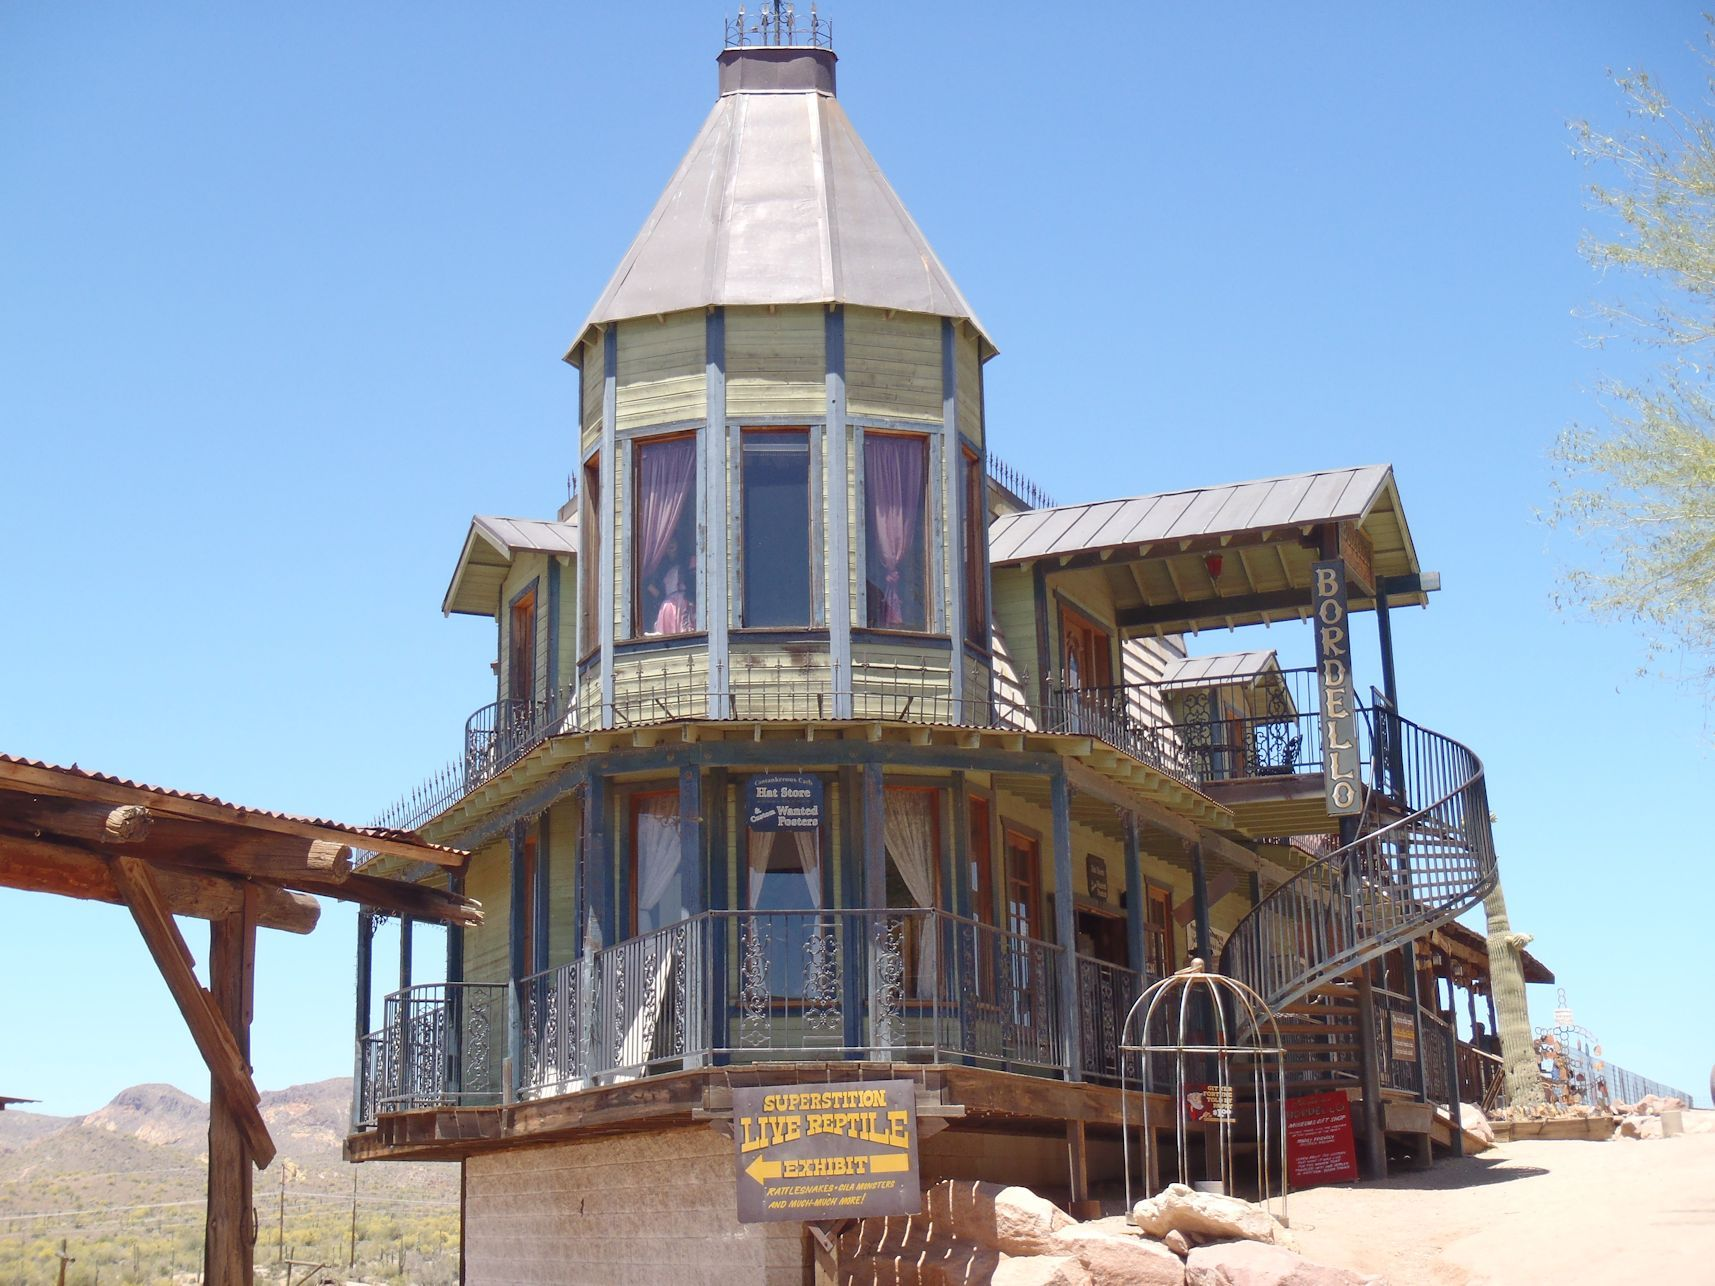 Abandoned Fort Courage Trading Post Houck Az Buildings With Personal Belongings Route 66